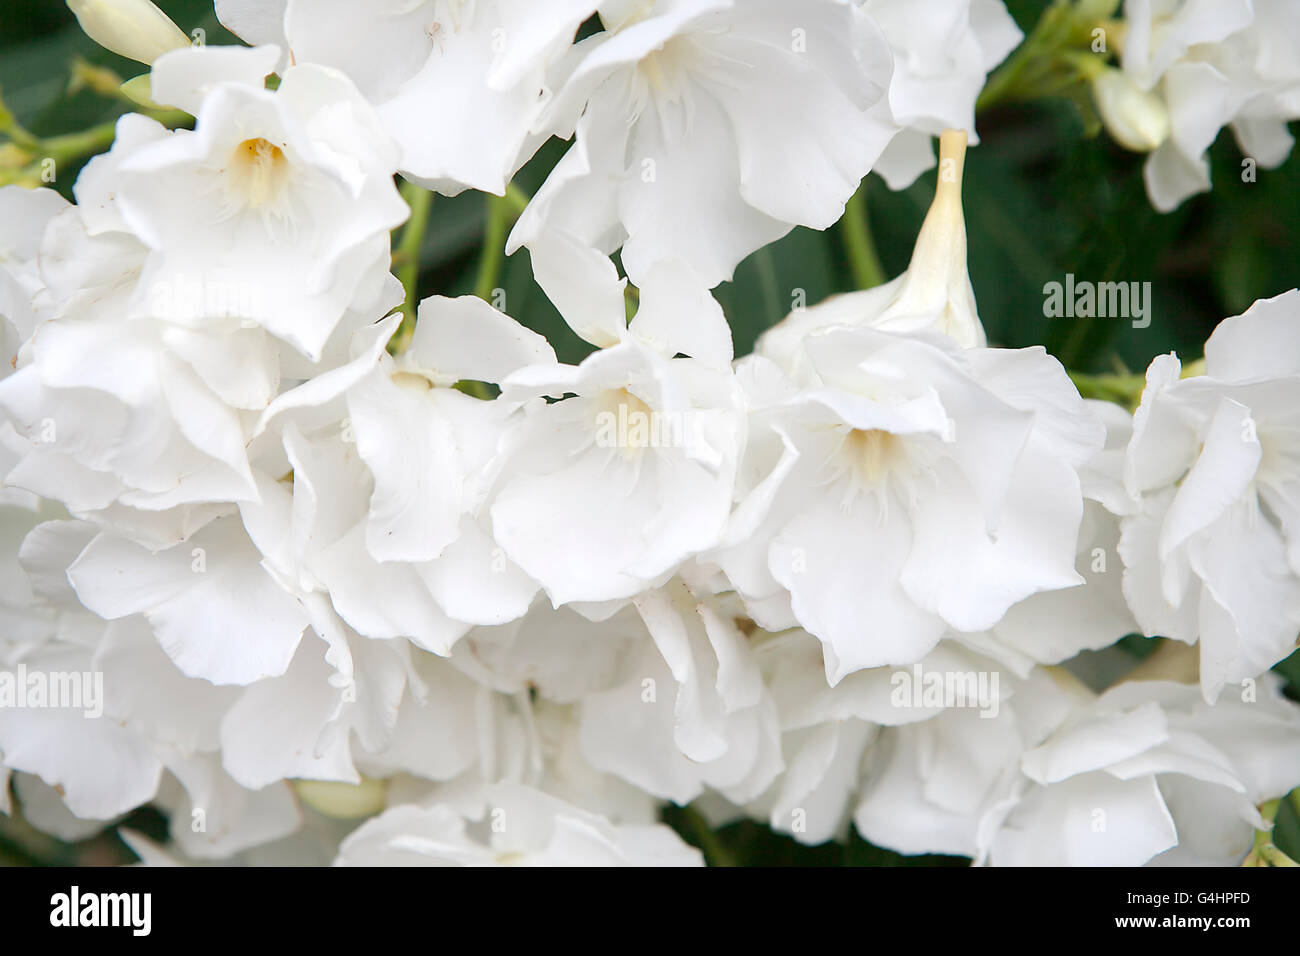 White Oleander Flowers As A Background Stock Photo 106111697 Alamy